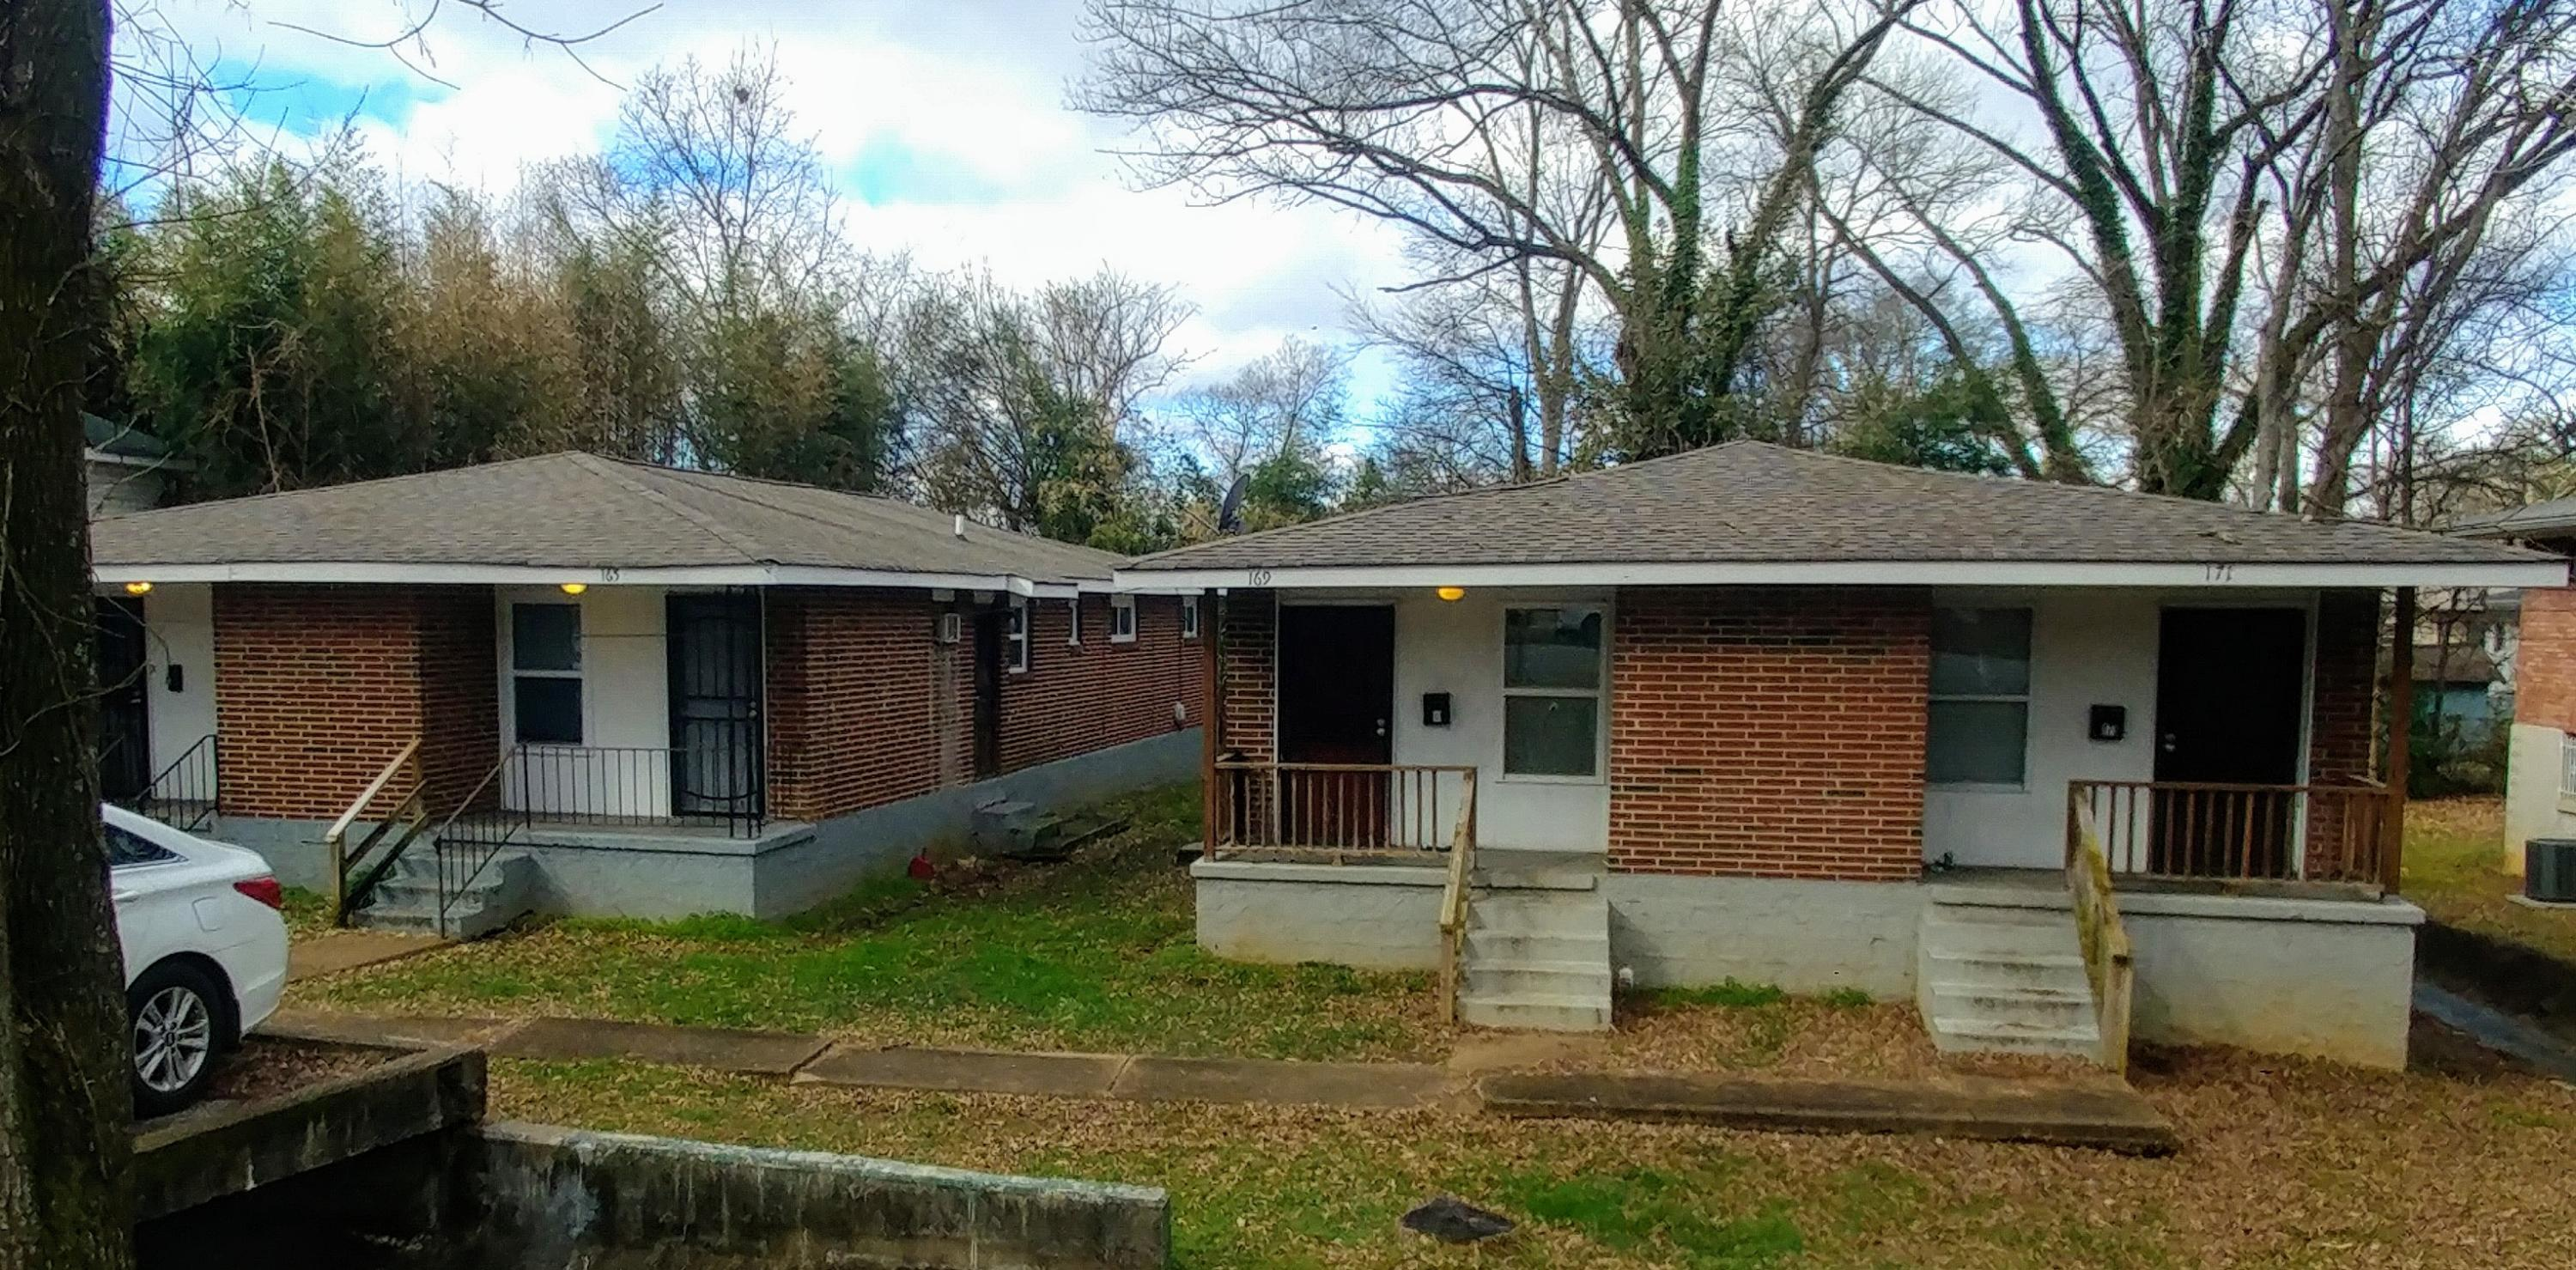 163 Glenwood Dr, Chattanooga, TN 37404